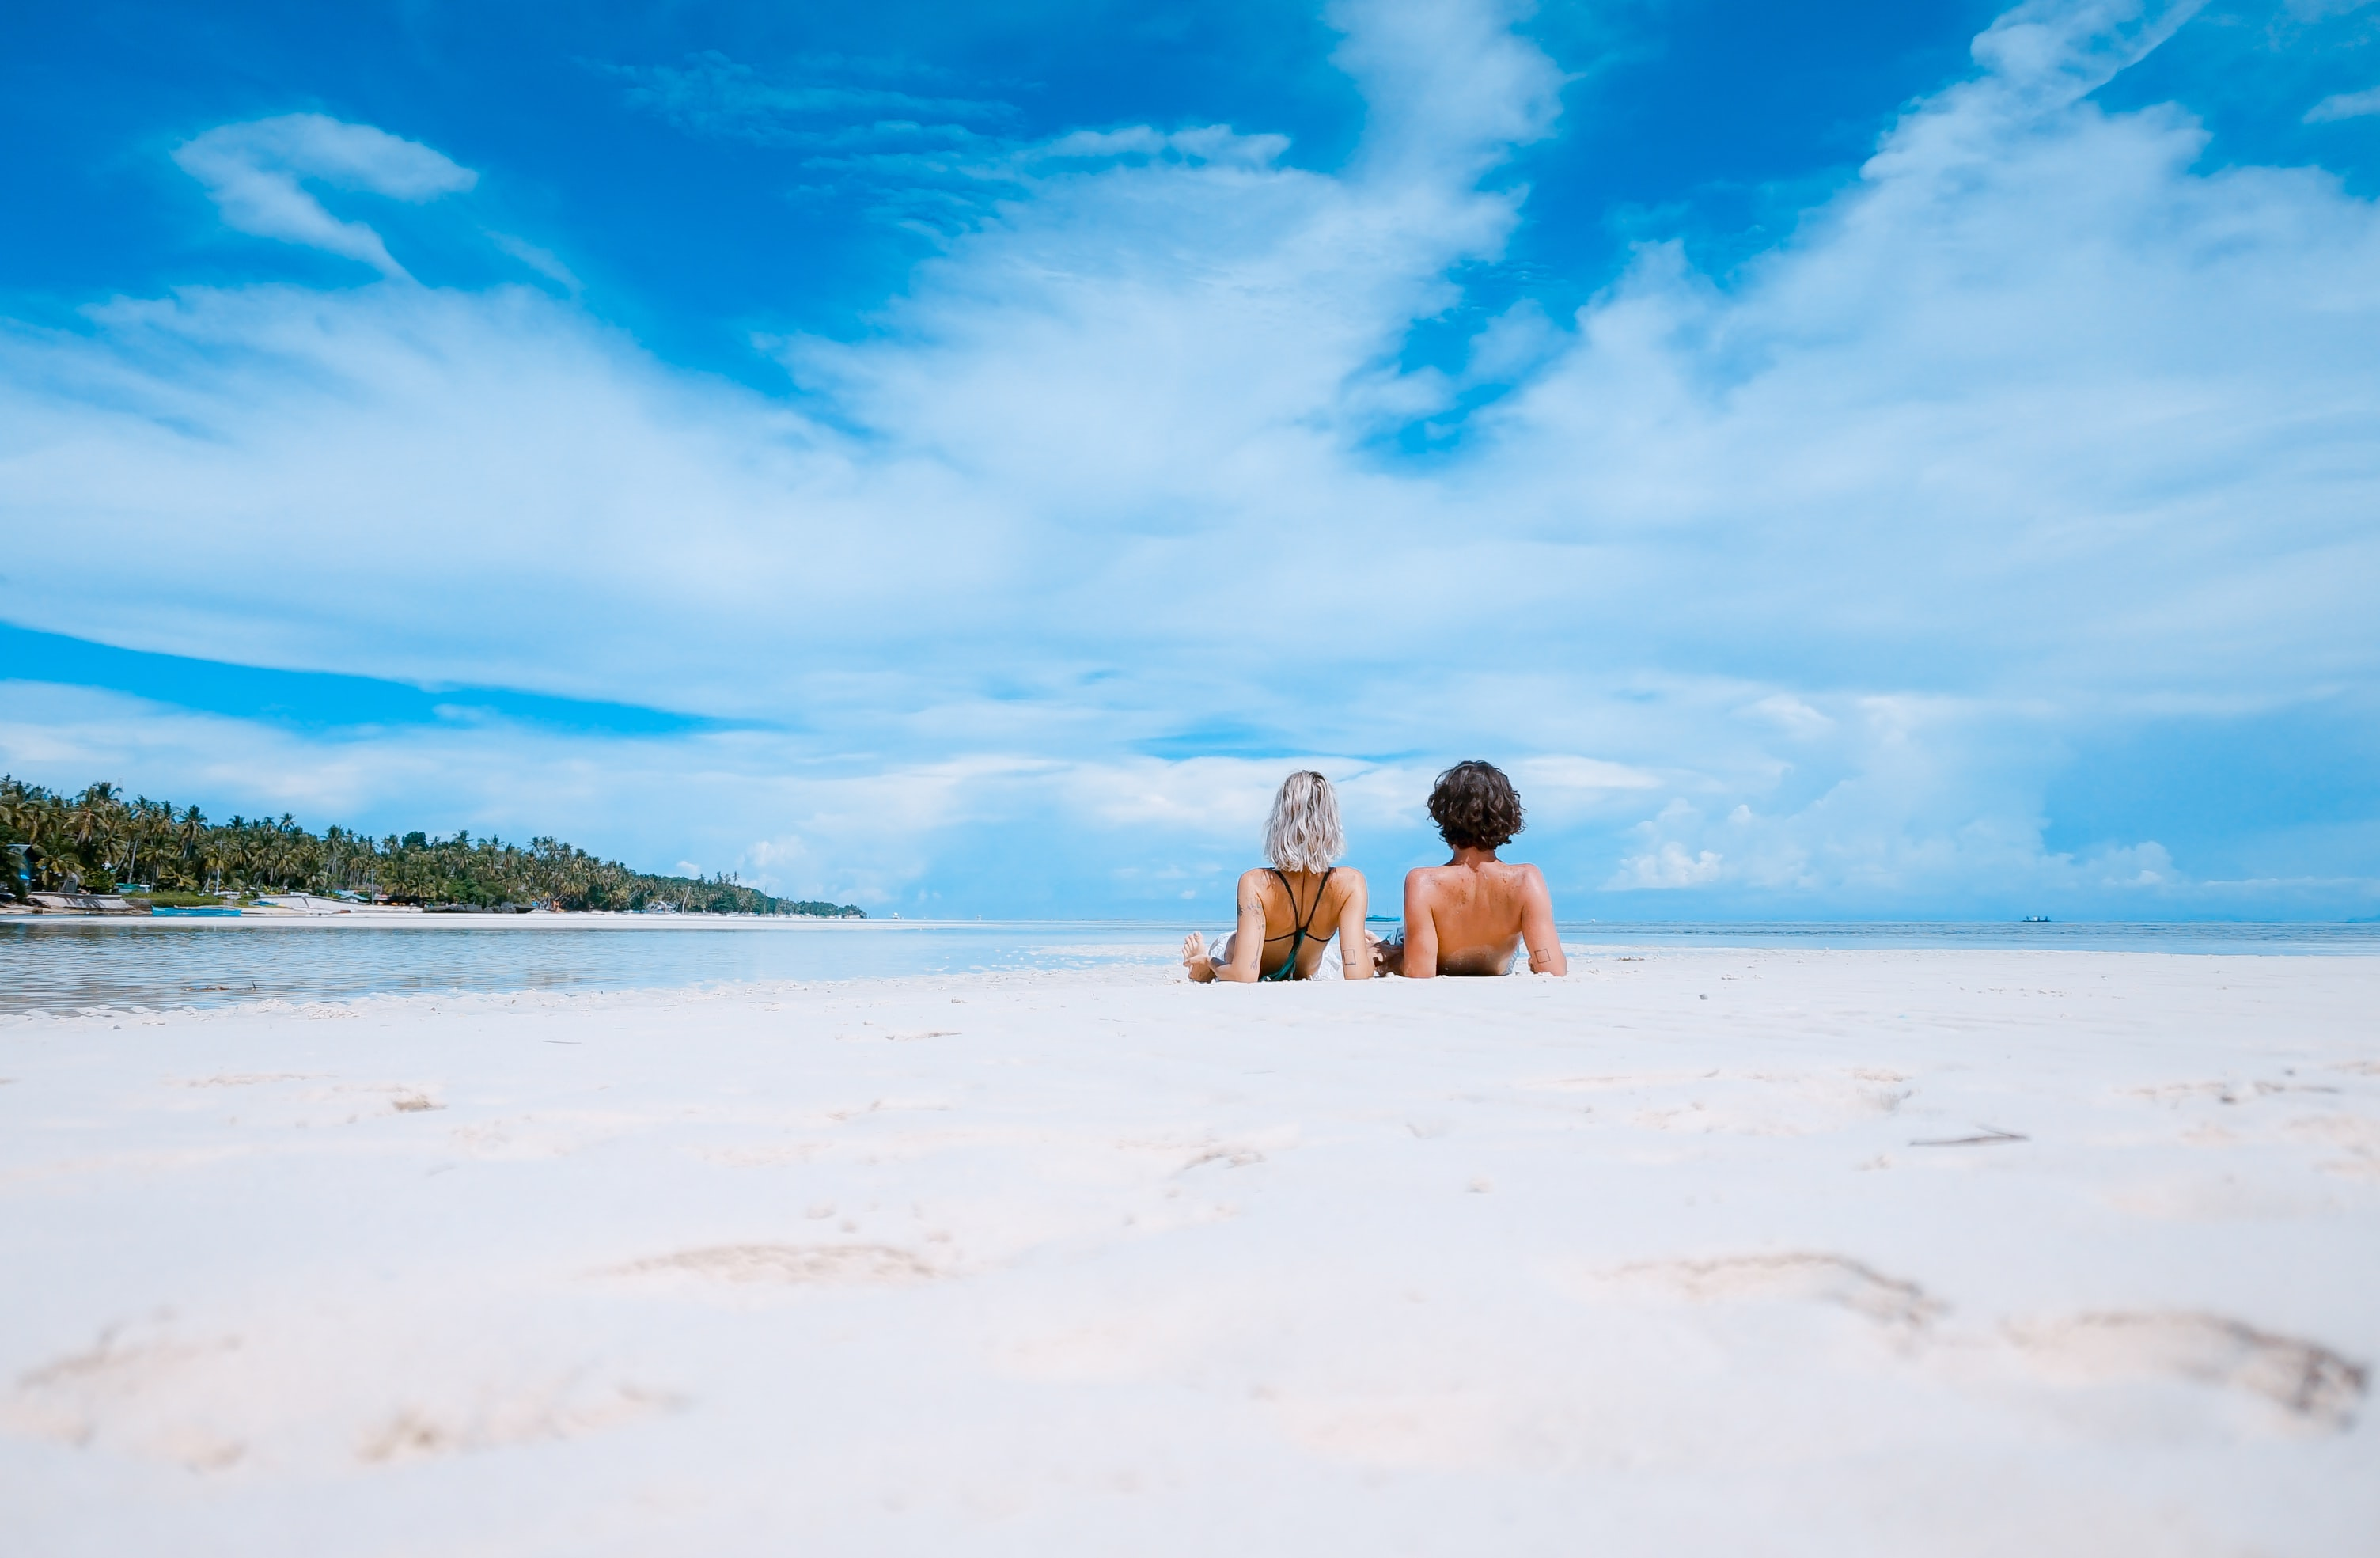 Couple enjoys tropical beach with white sands and clear sky